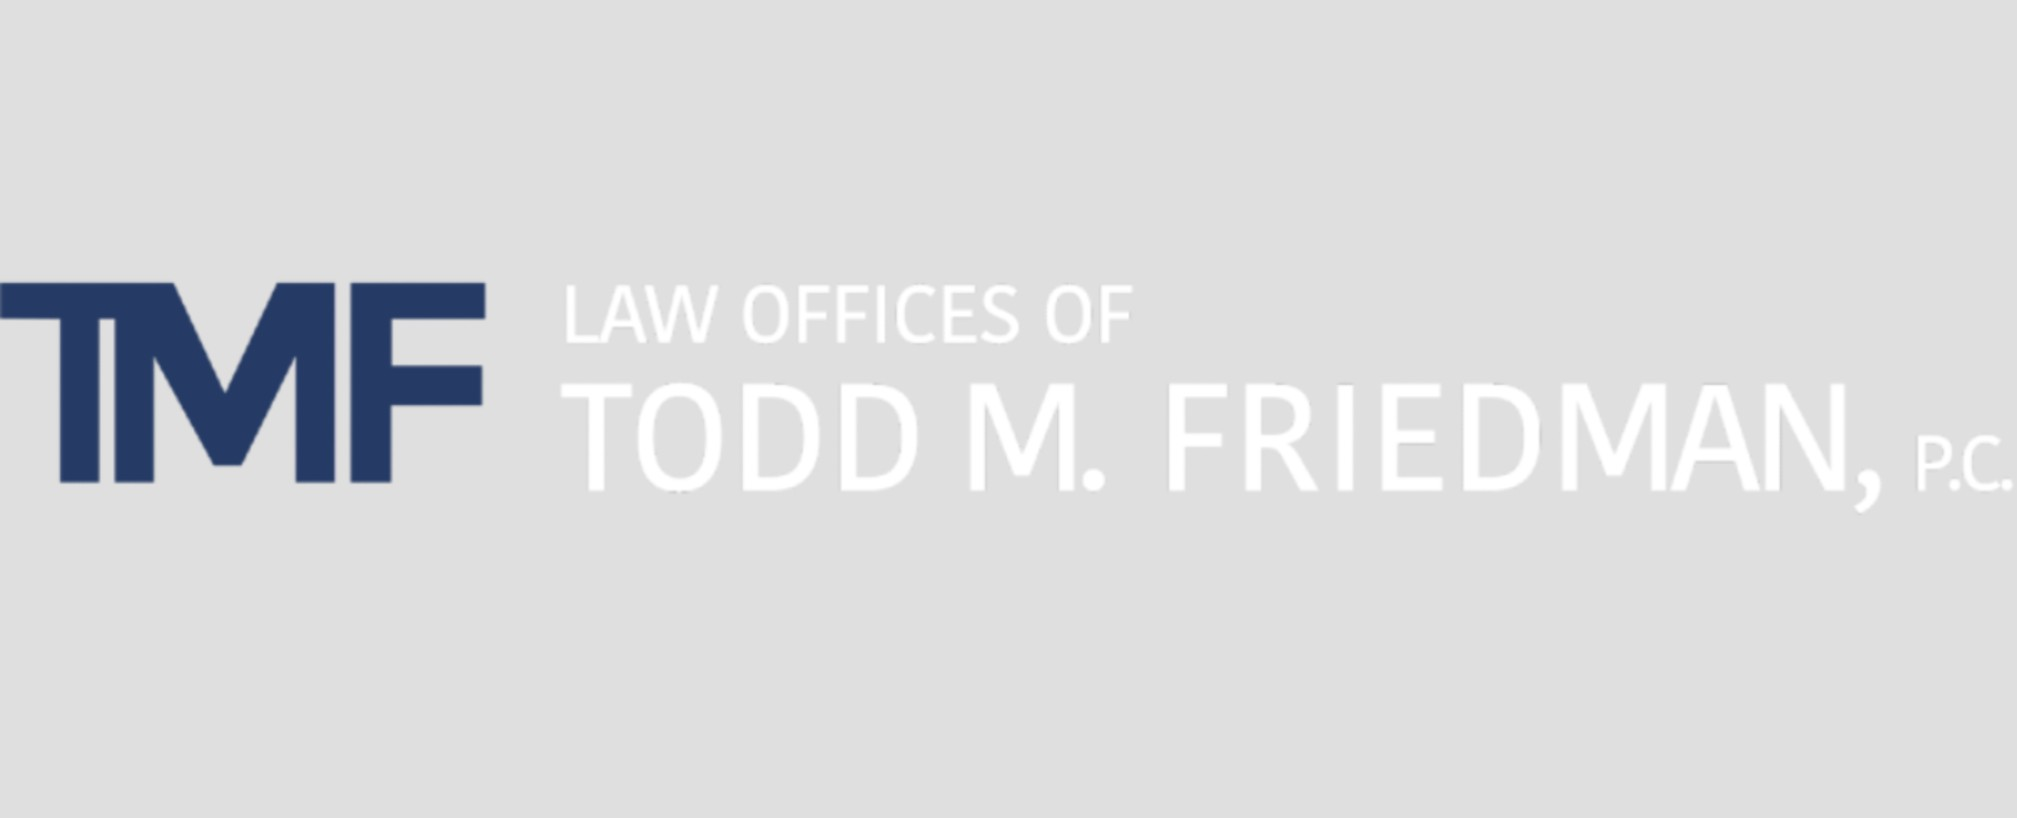 Law Offices of Todd M. Friedman